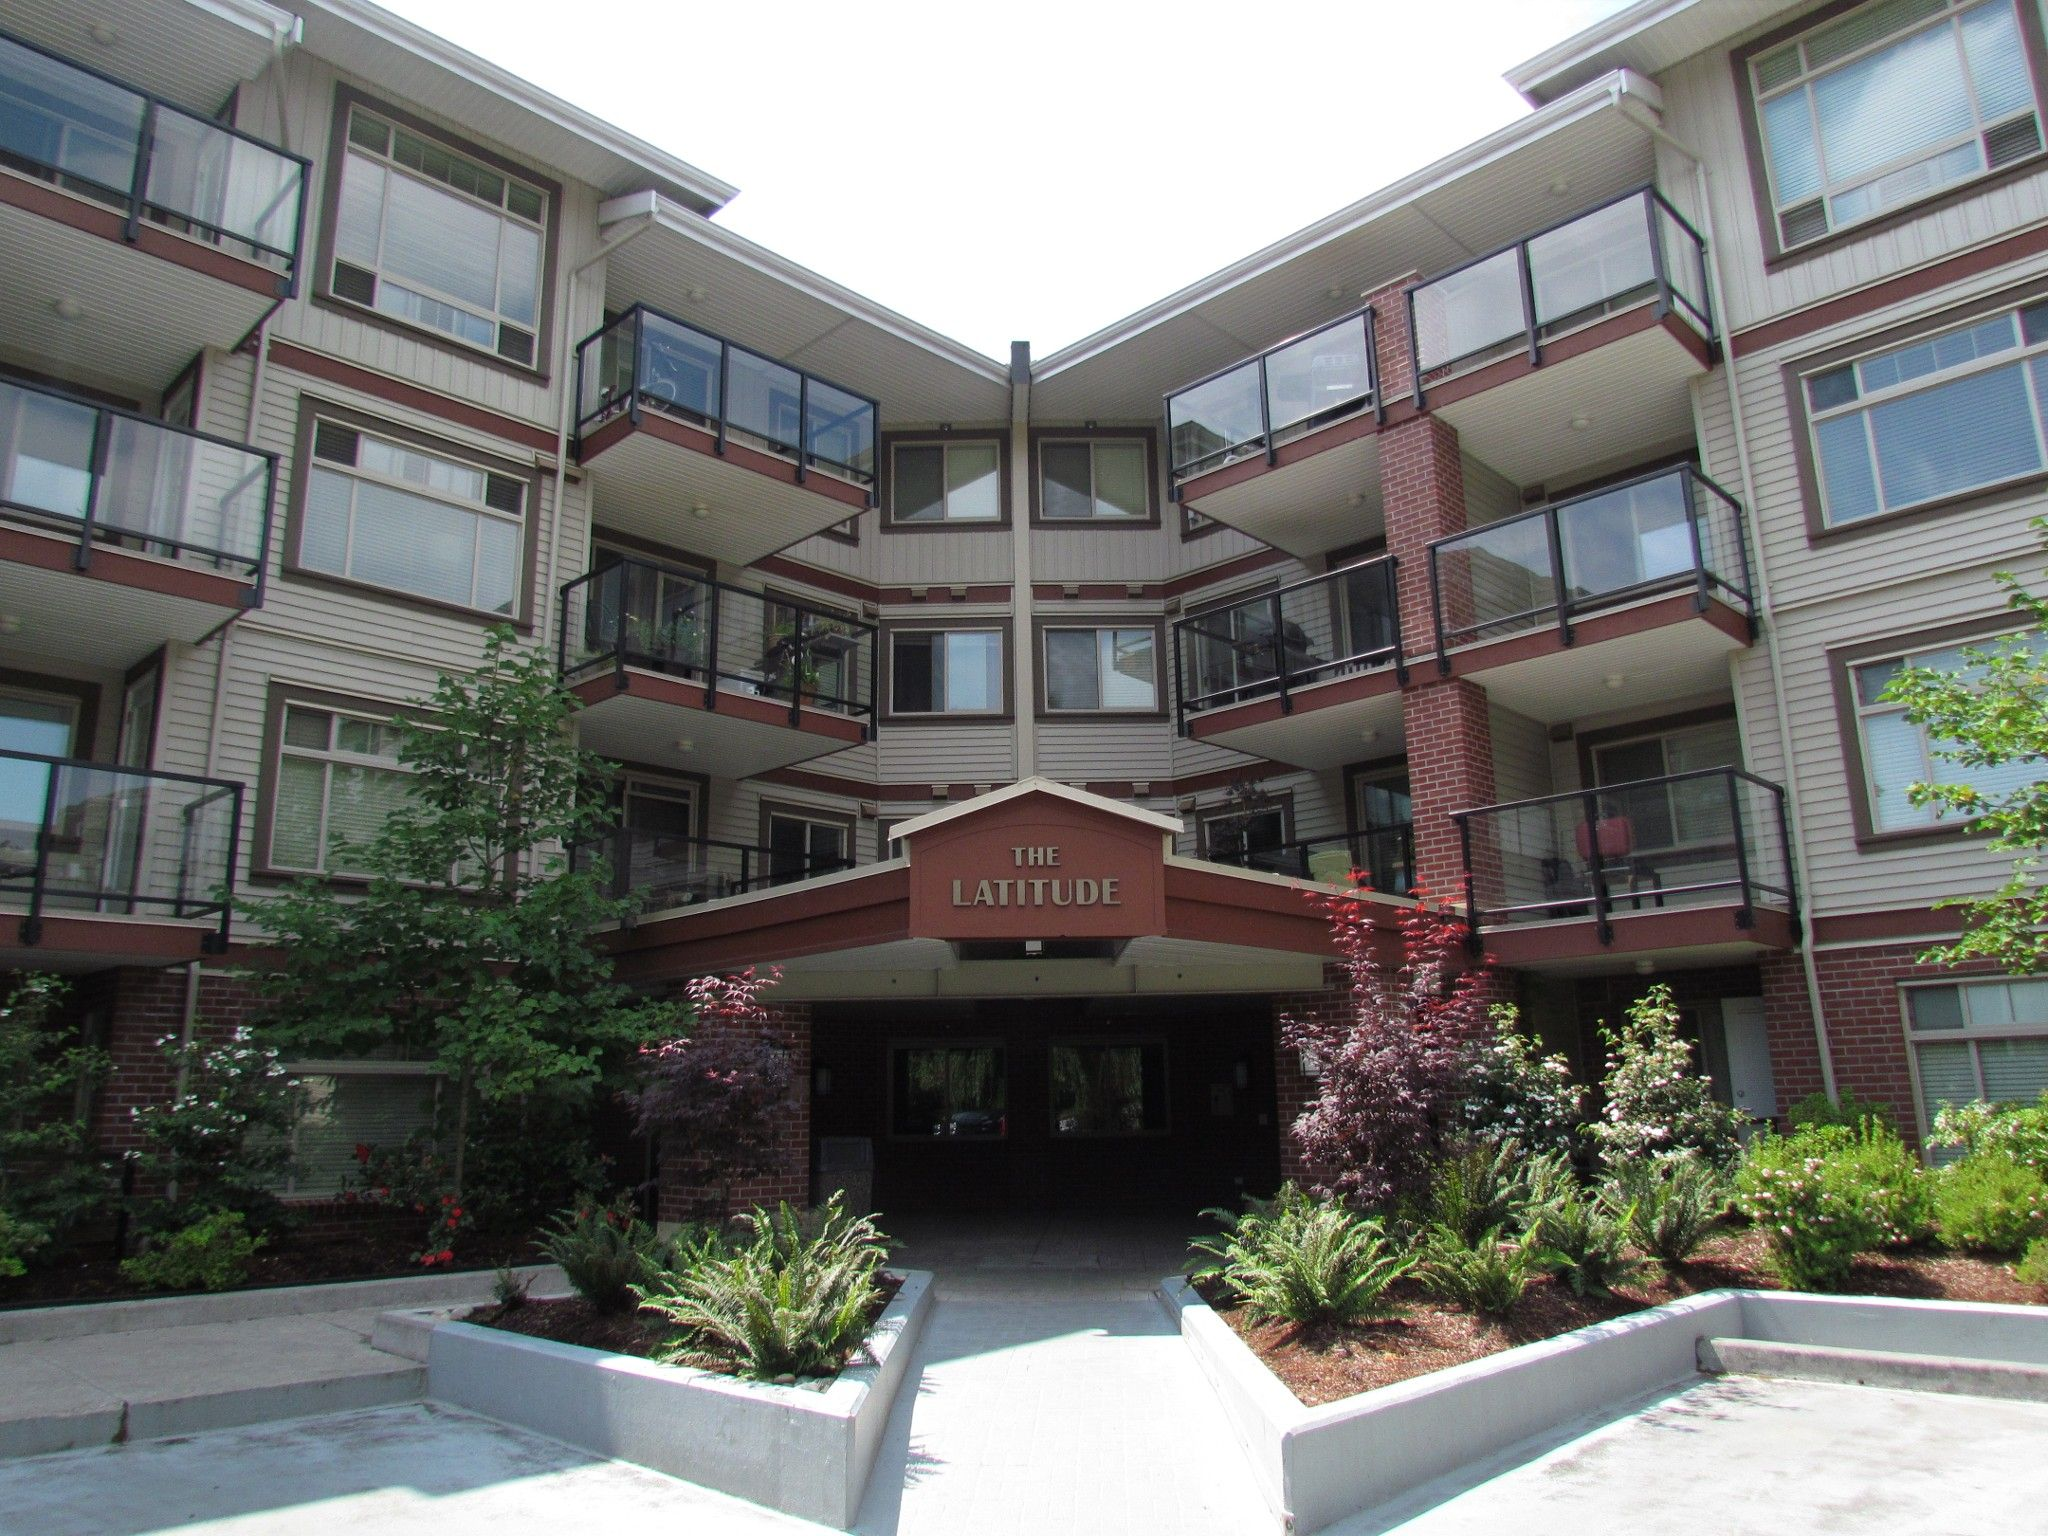 Main Photo: #131 2233 McKenzie Rd. in Abbotsford: Central Abbotsford Condo for rent